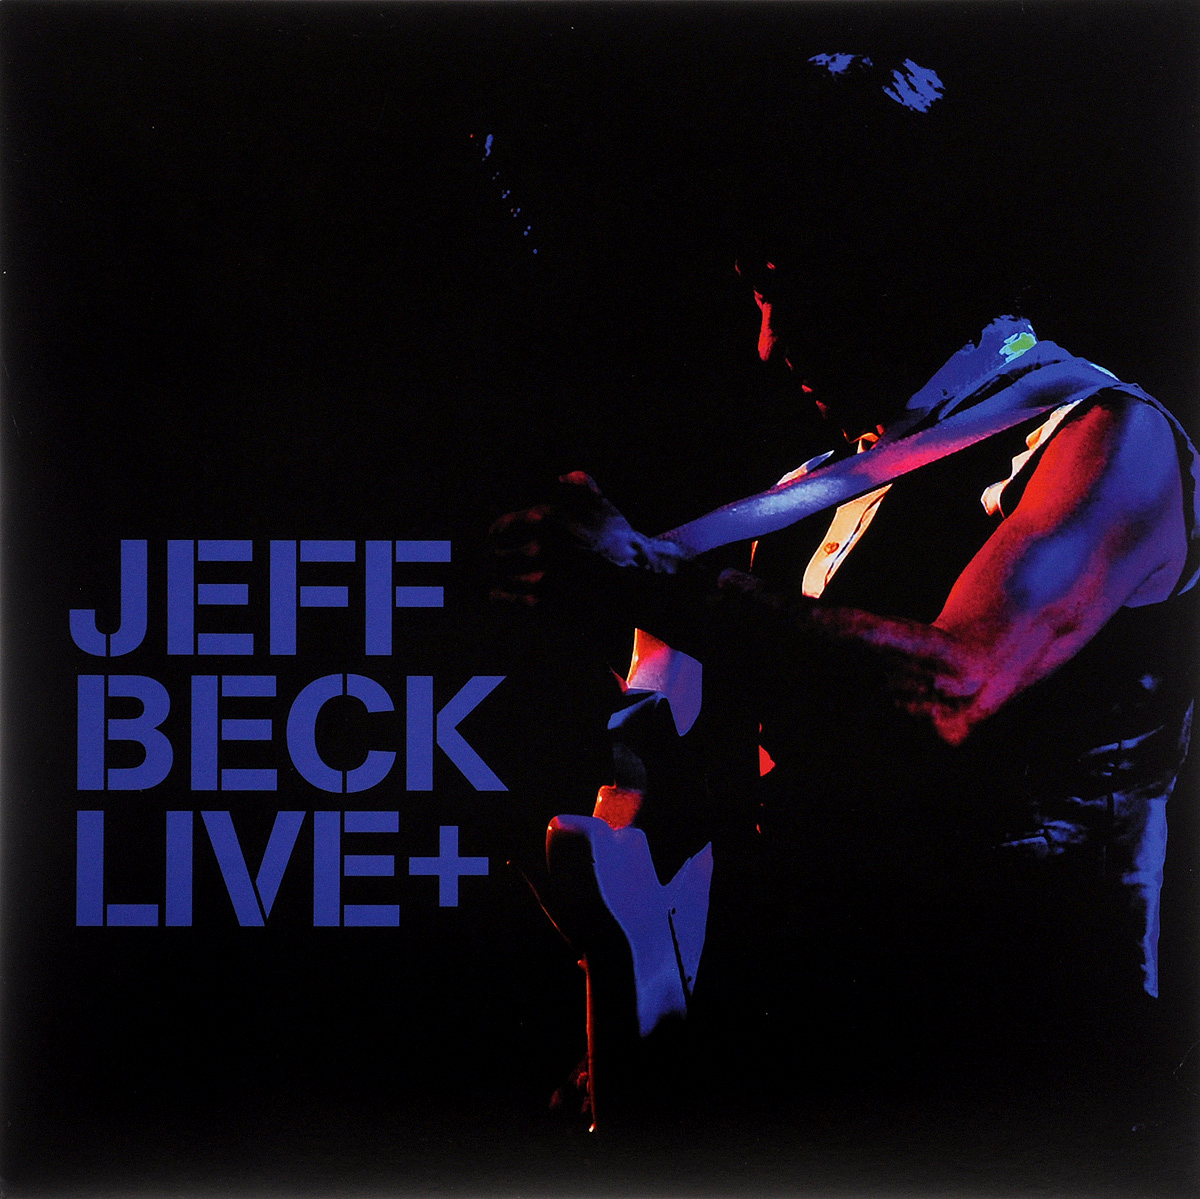 Джефф Бек Jeff Beck. Live + (2 LP) 2015 10